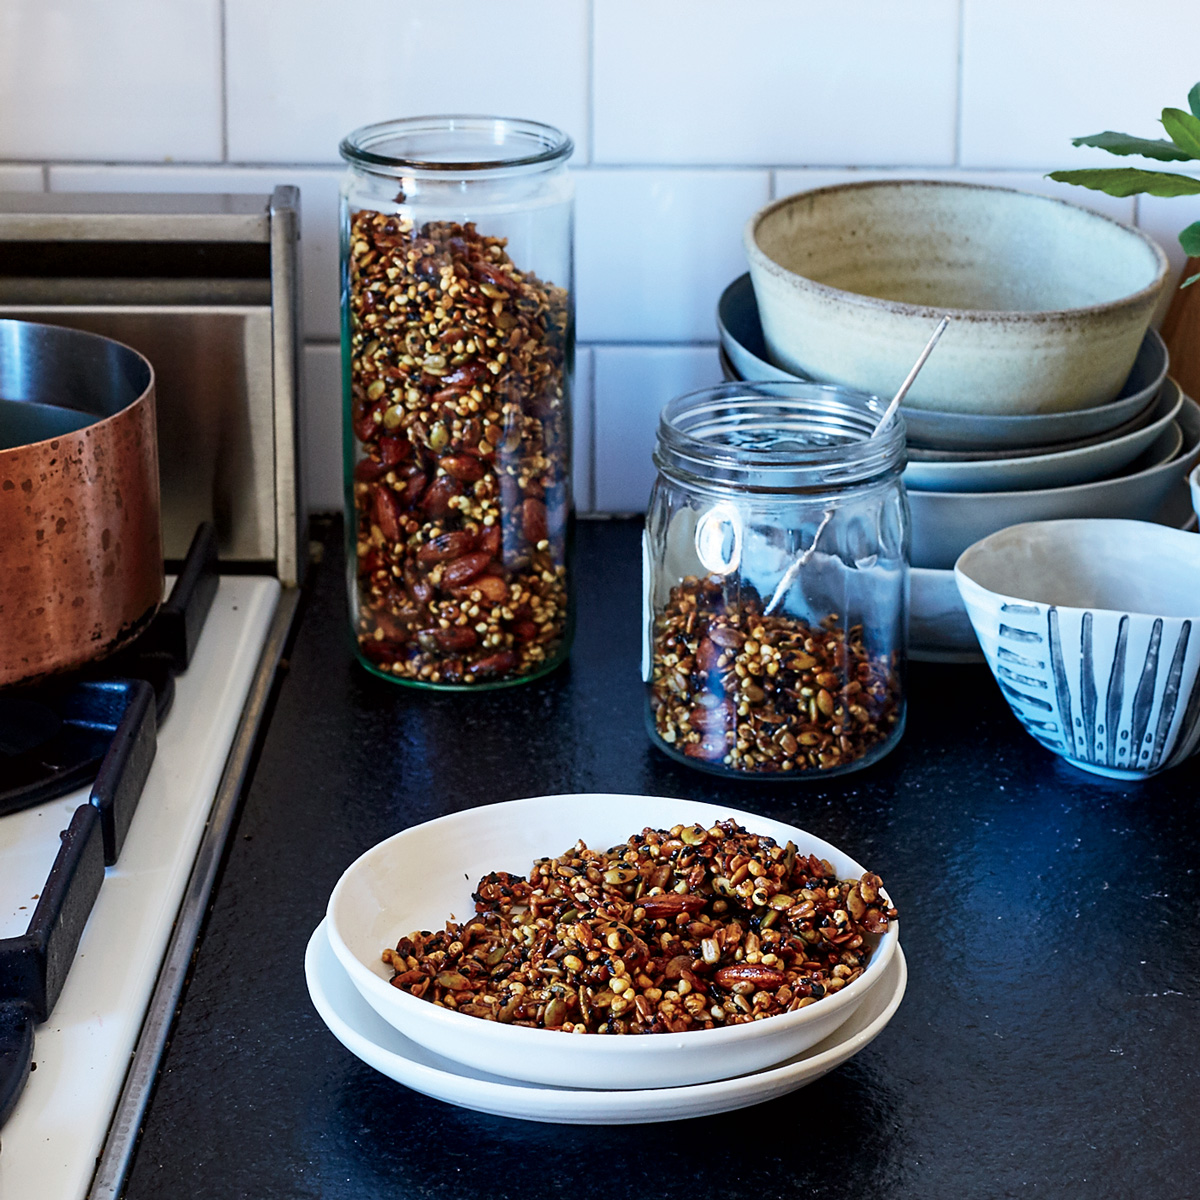 Sweet and Spicy Black Sesame Seed and Nut Mix